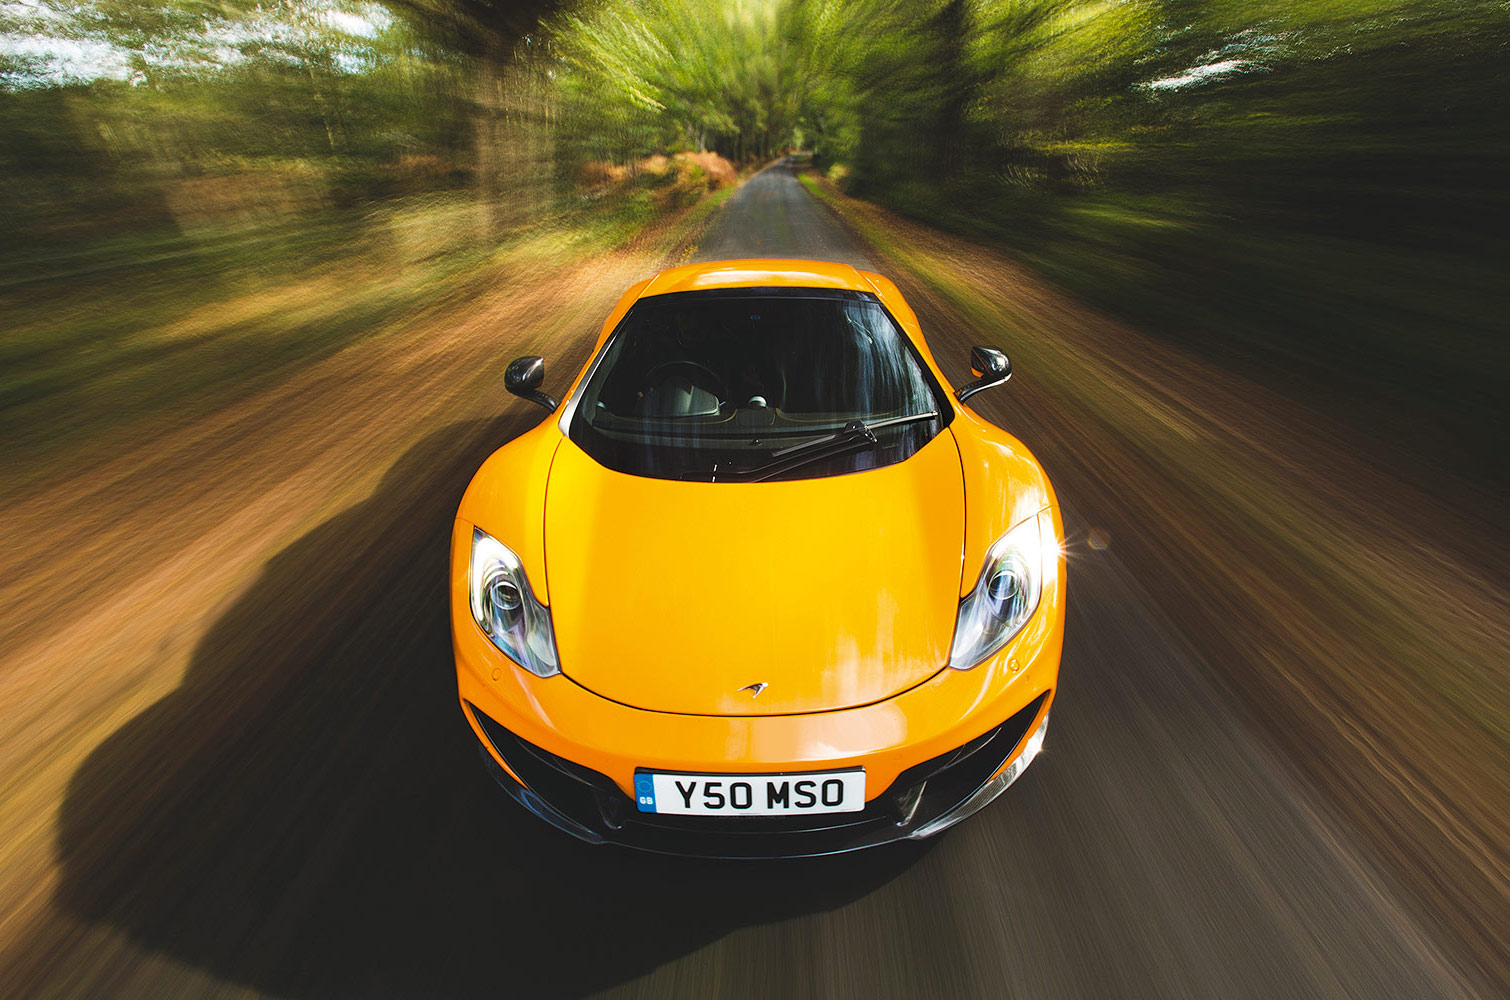 There is no more exotic car manufacturer than McLaren, at least among those of models homologated for sale all over the world and with annual sales measurable in the thousands